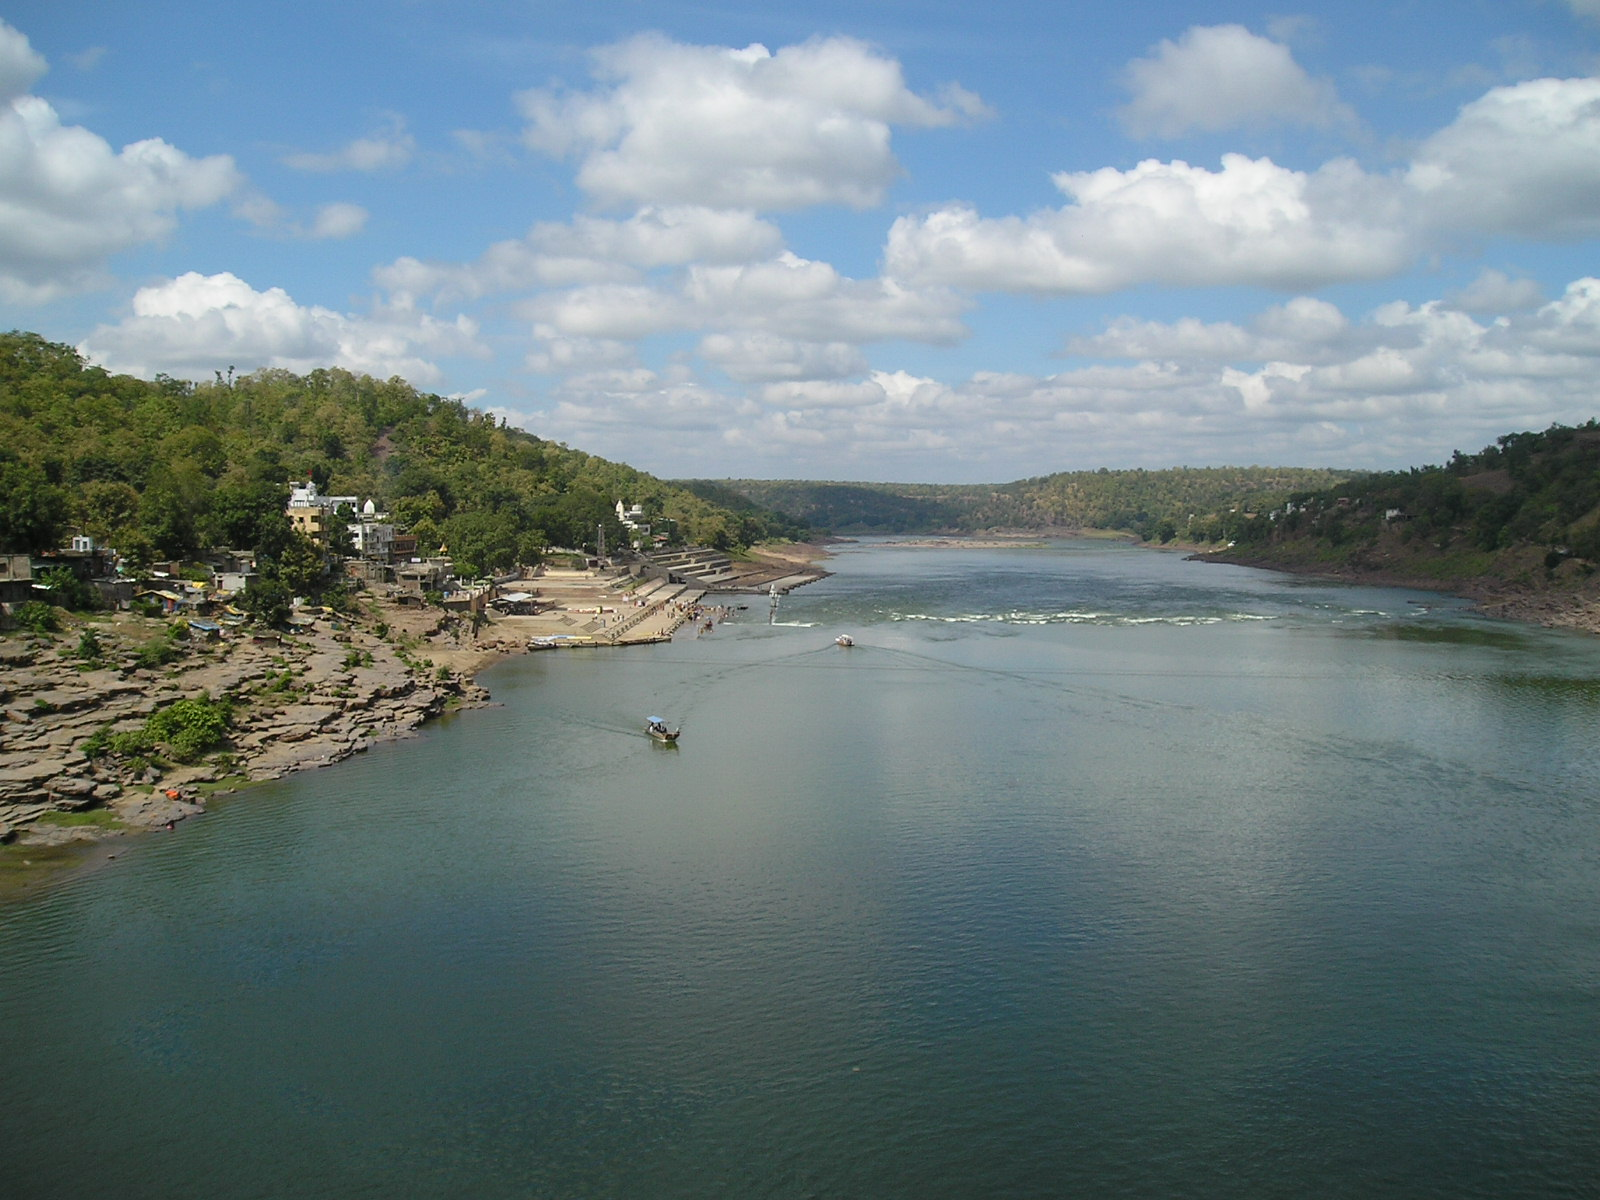 Omkareshwar Narmada River